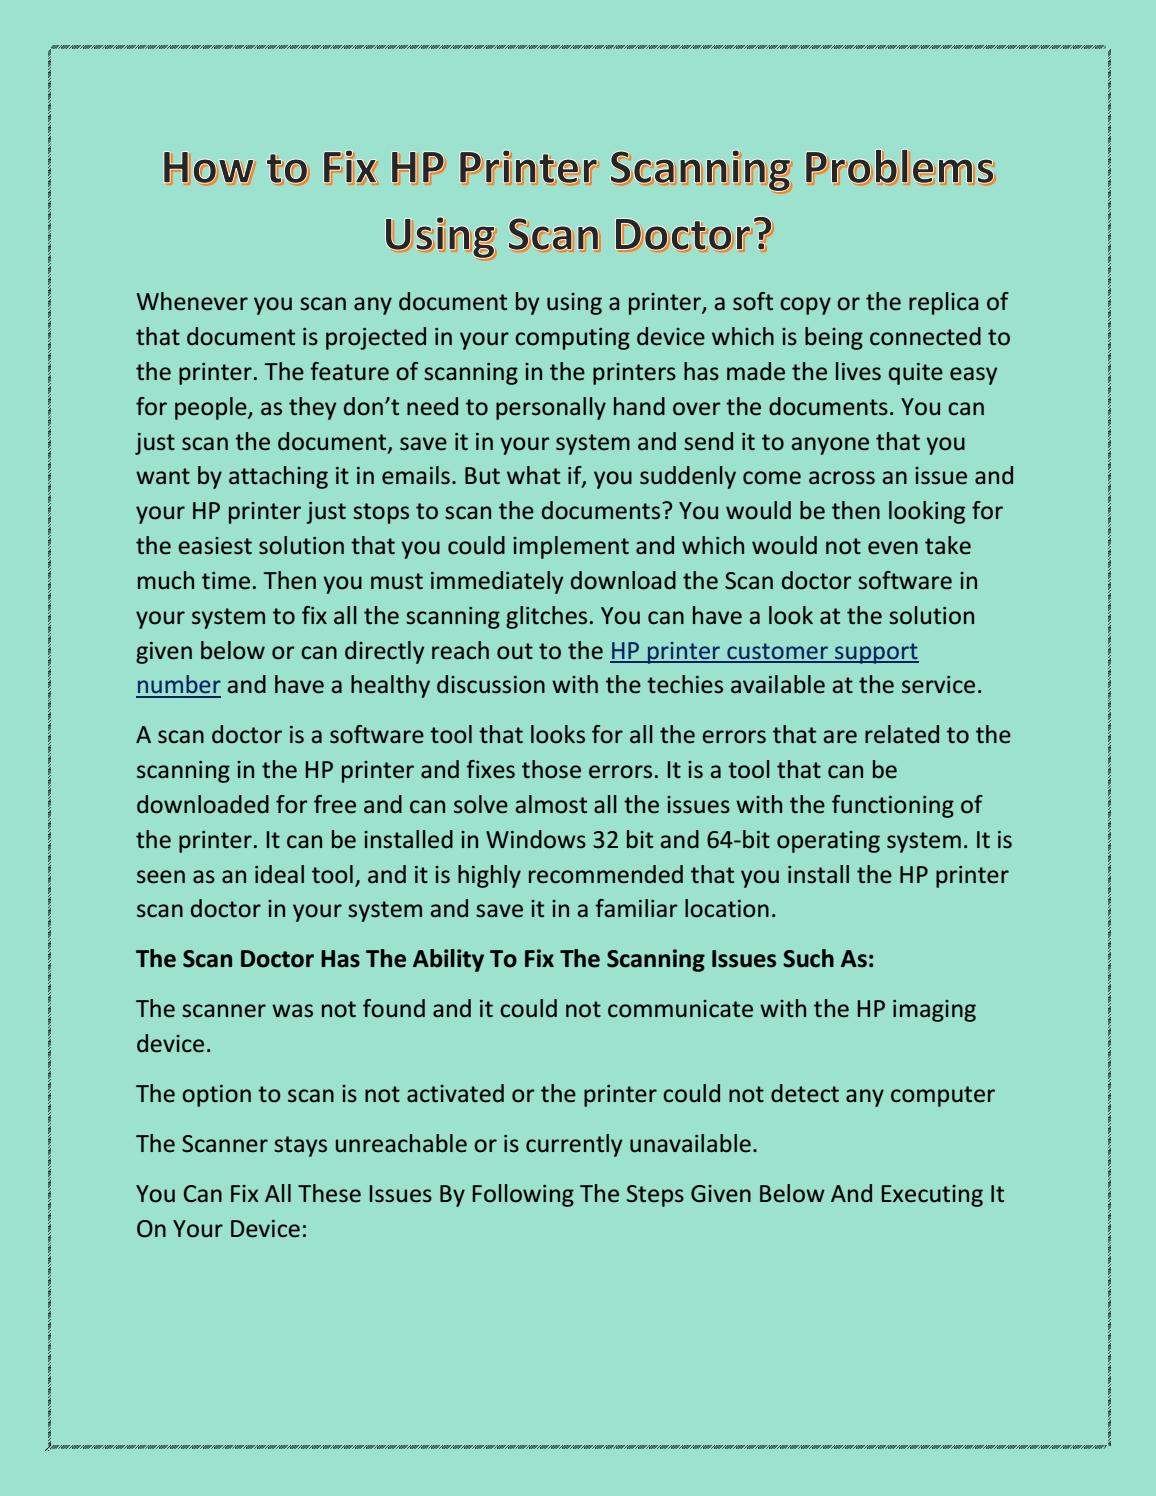 1-855-228-6818 How to Fix HP Printer Scanning Problems Using Scan